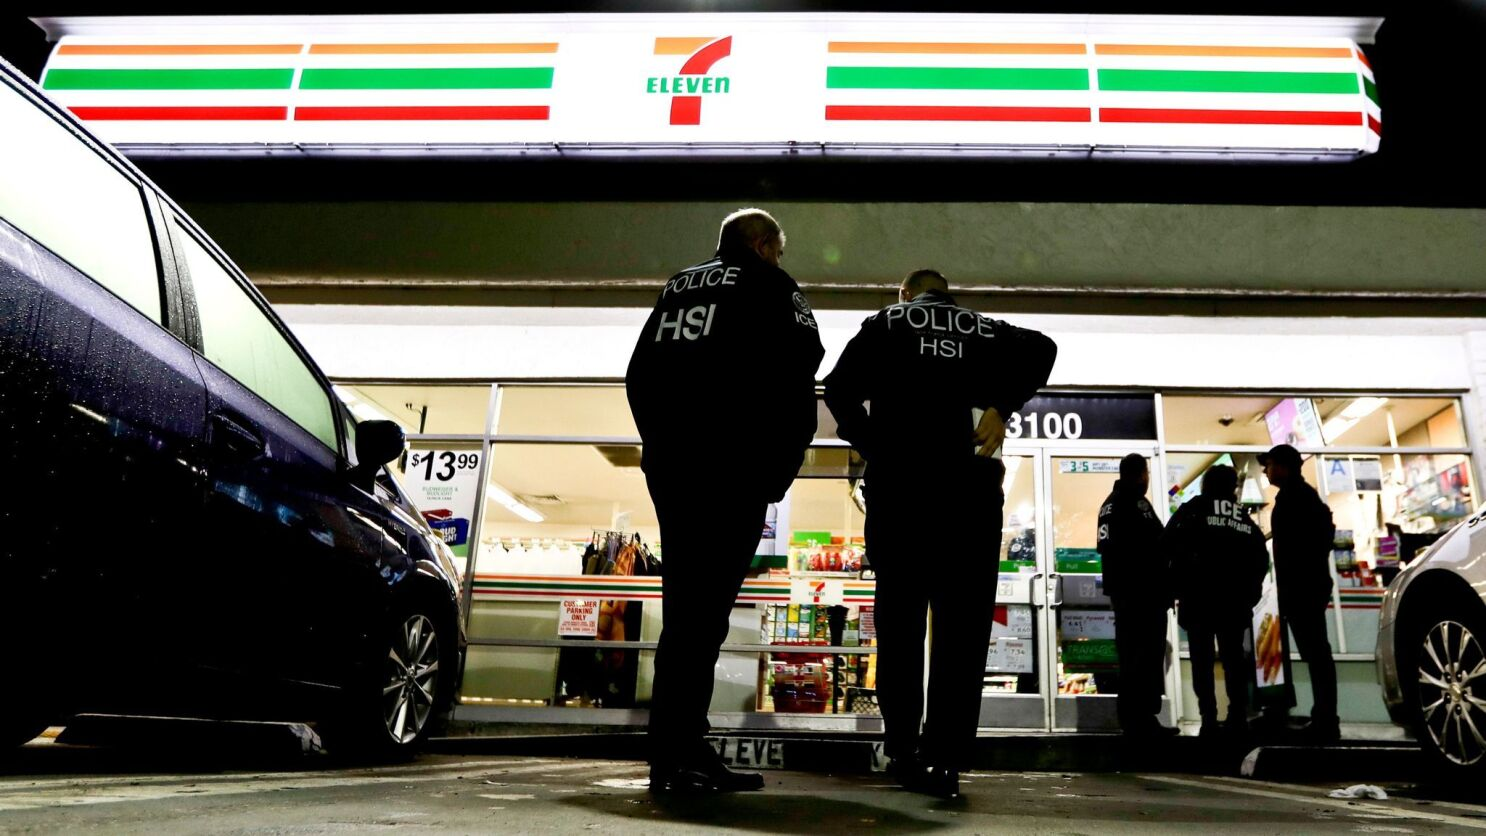 Why going to 7-Eleven has become a political act - Los Angeles Times